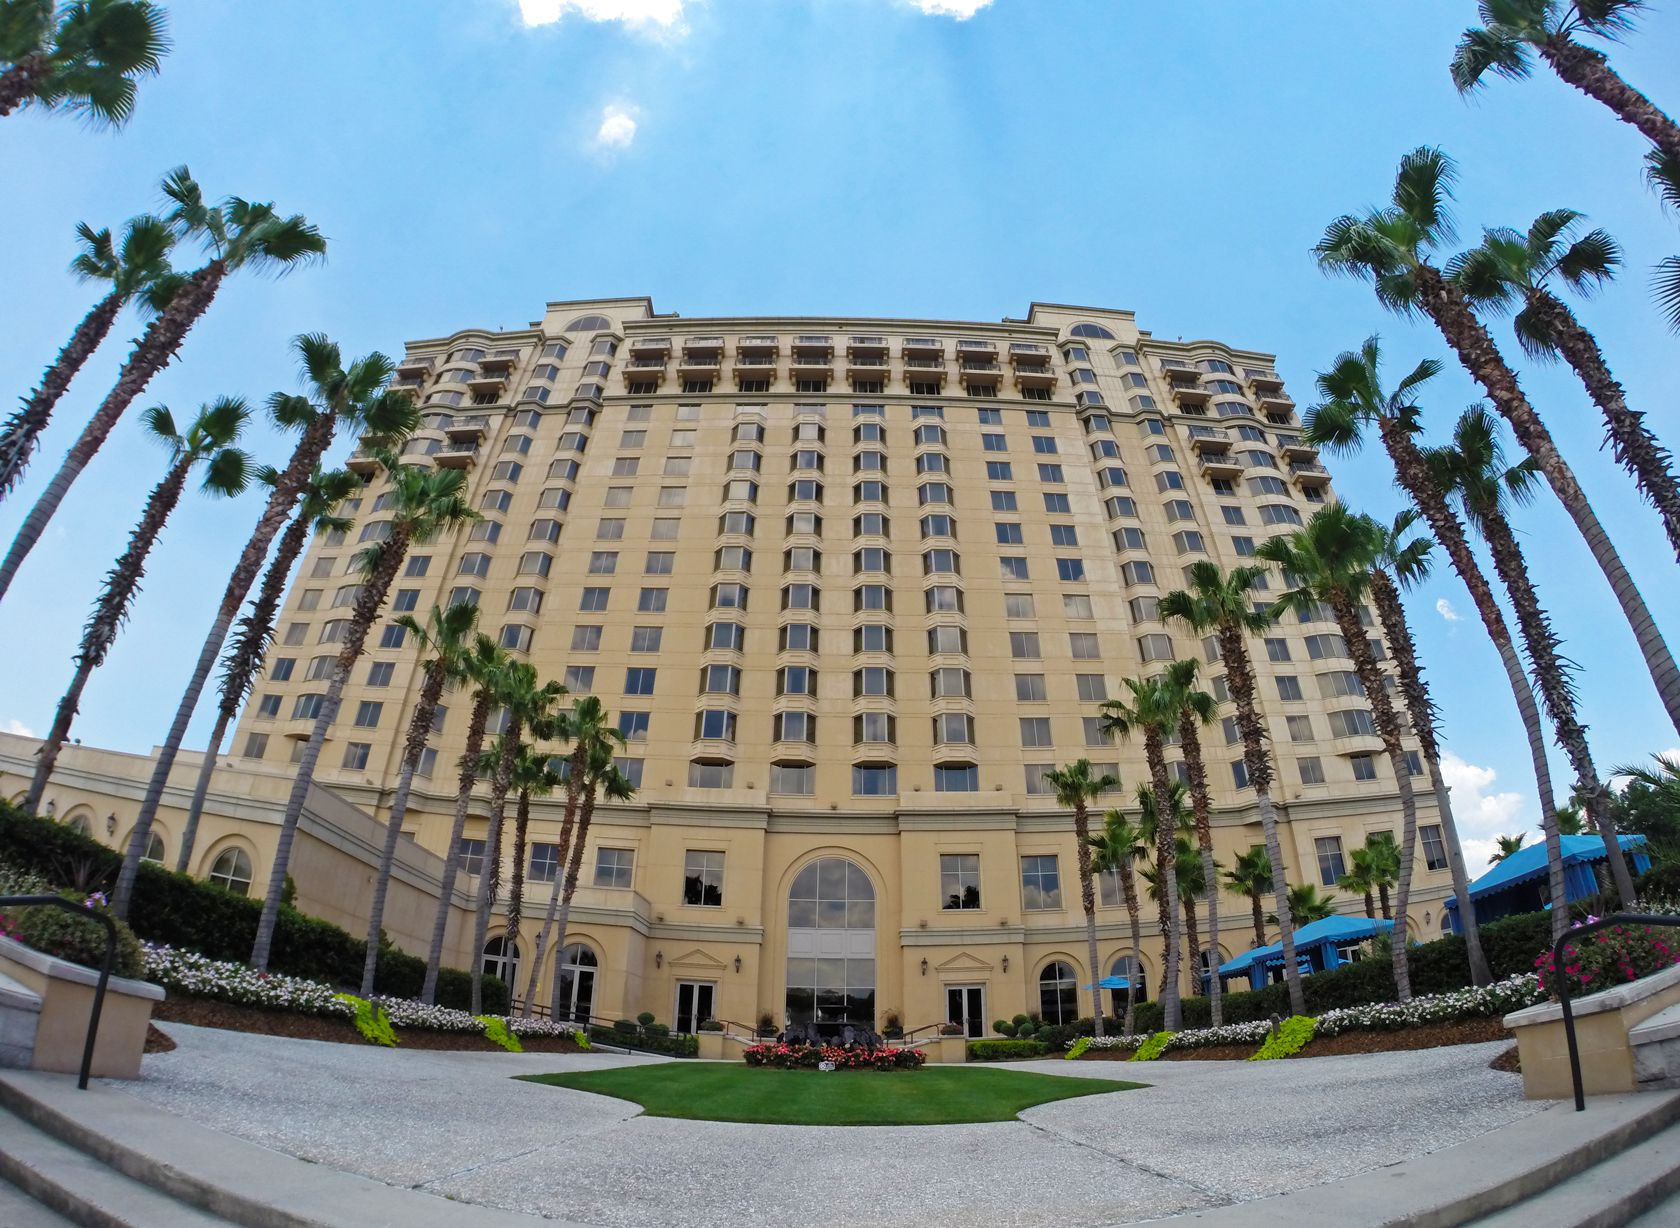 The Westin Hotel on Hutchinson Island, Savannah, Ga. #gopro | my ...